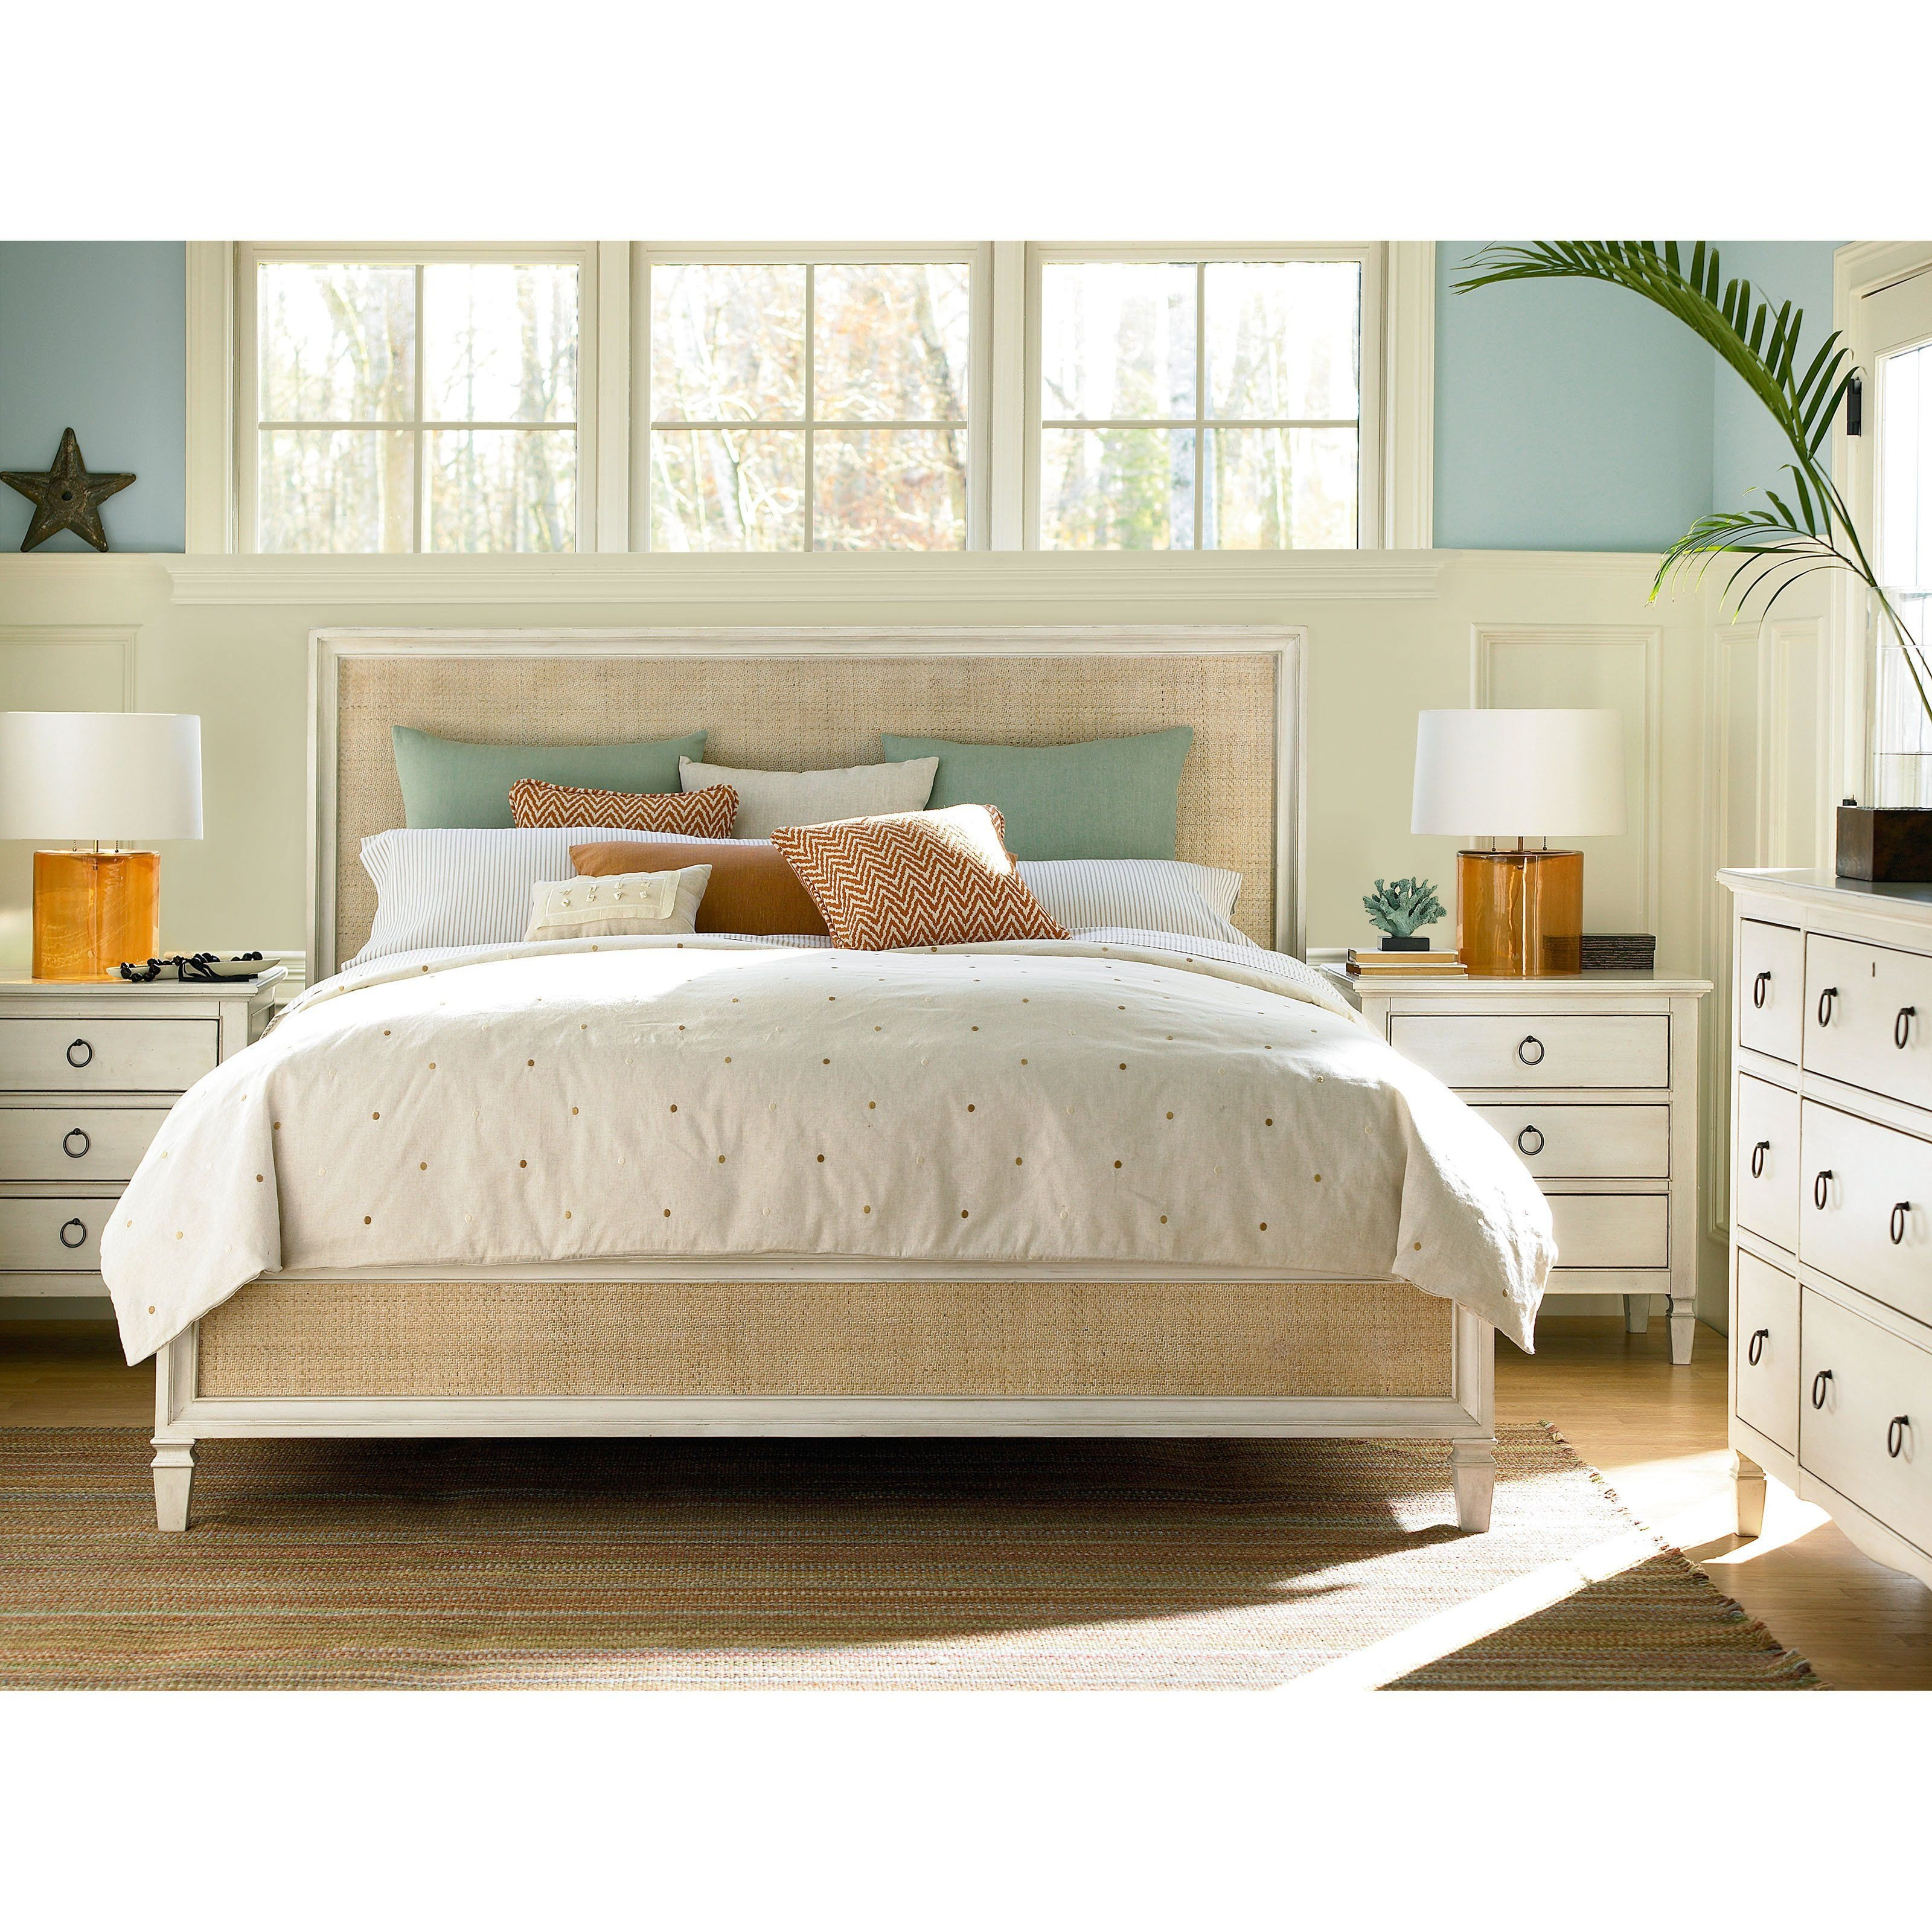 Low Profile Bedroom Set Awesome Summer Hill Woven Low Profile Bed Cotton Unir1783 In